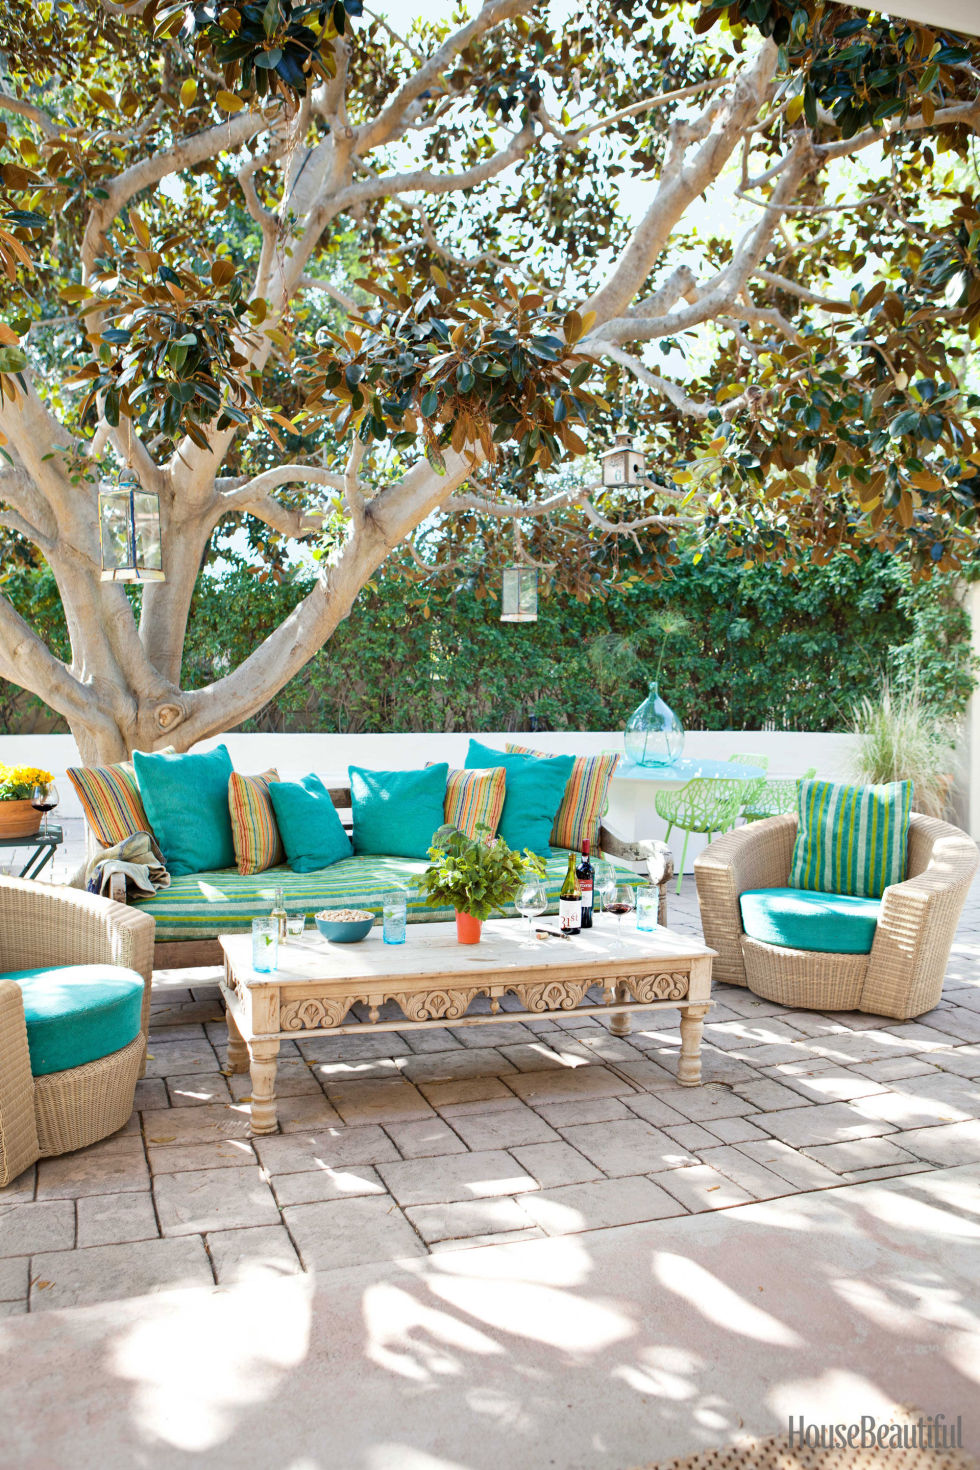 Backyard patio ideas for small spaces - Backyard Patio Ideas For Small Spaces 76